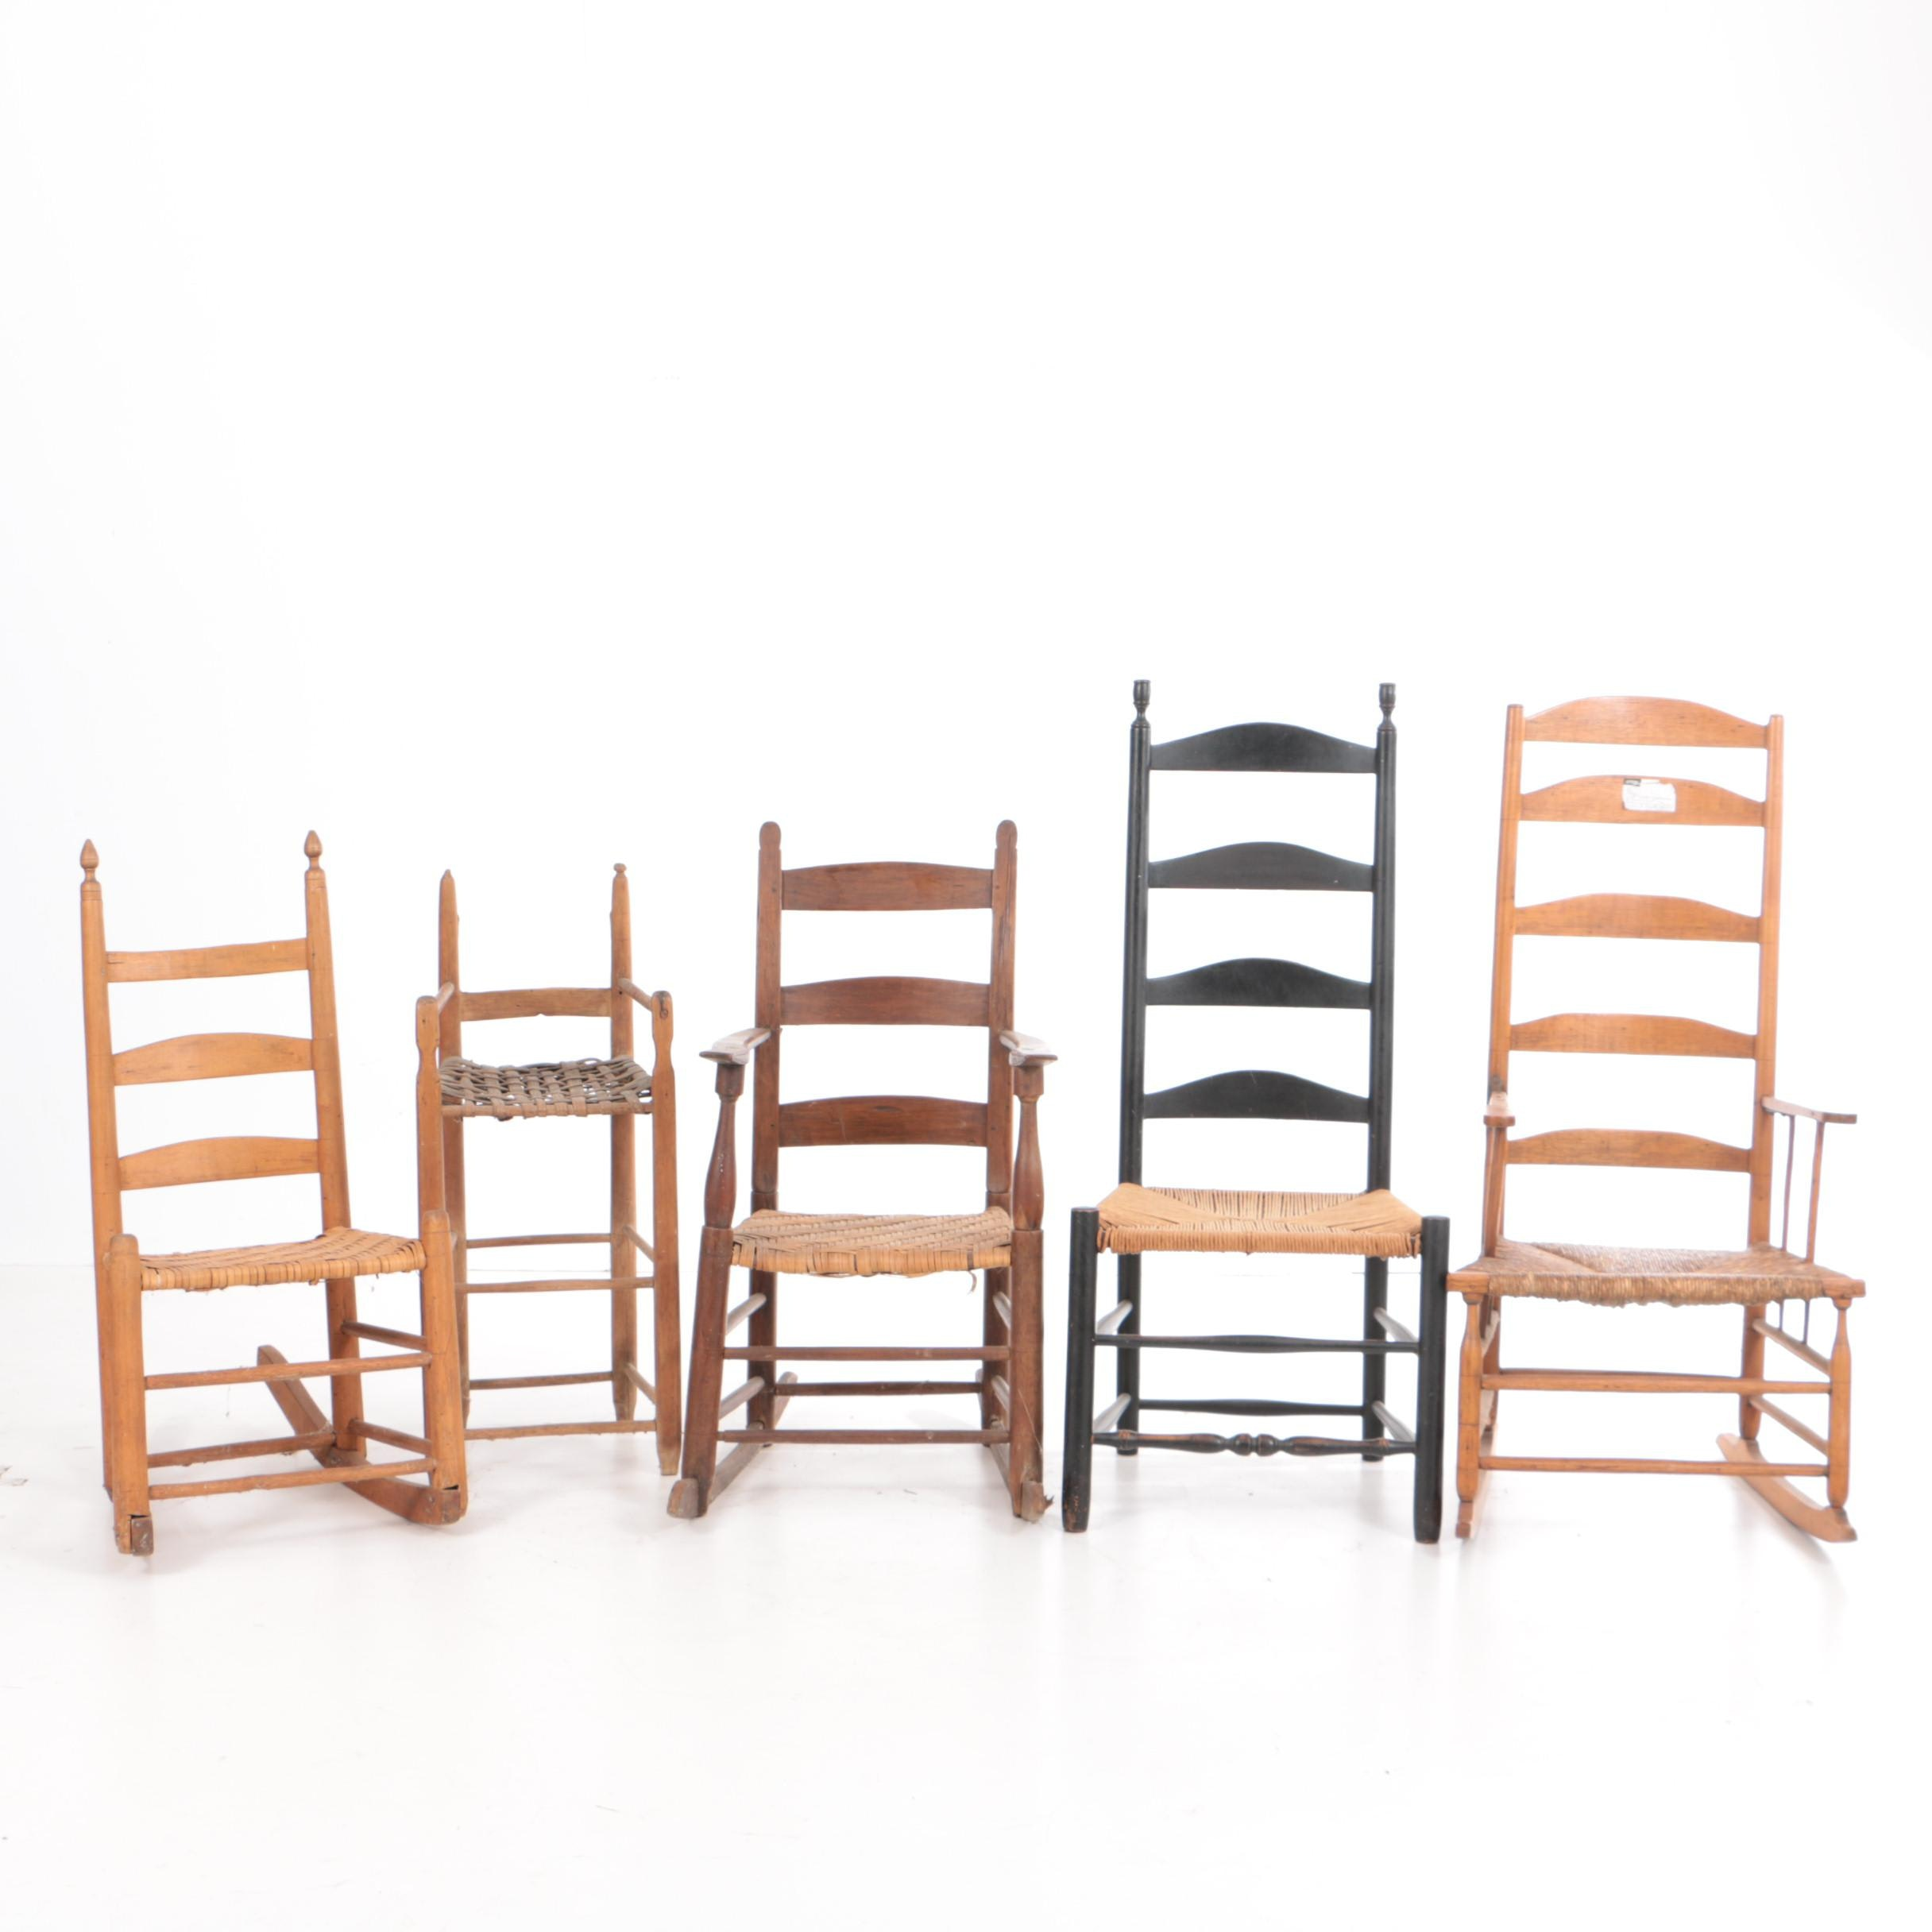 Antique Ladderback Chairs with Woven Seats